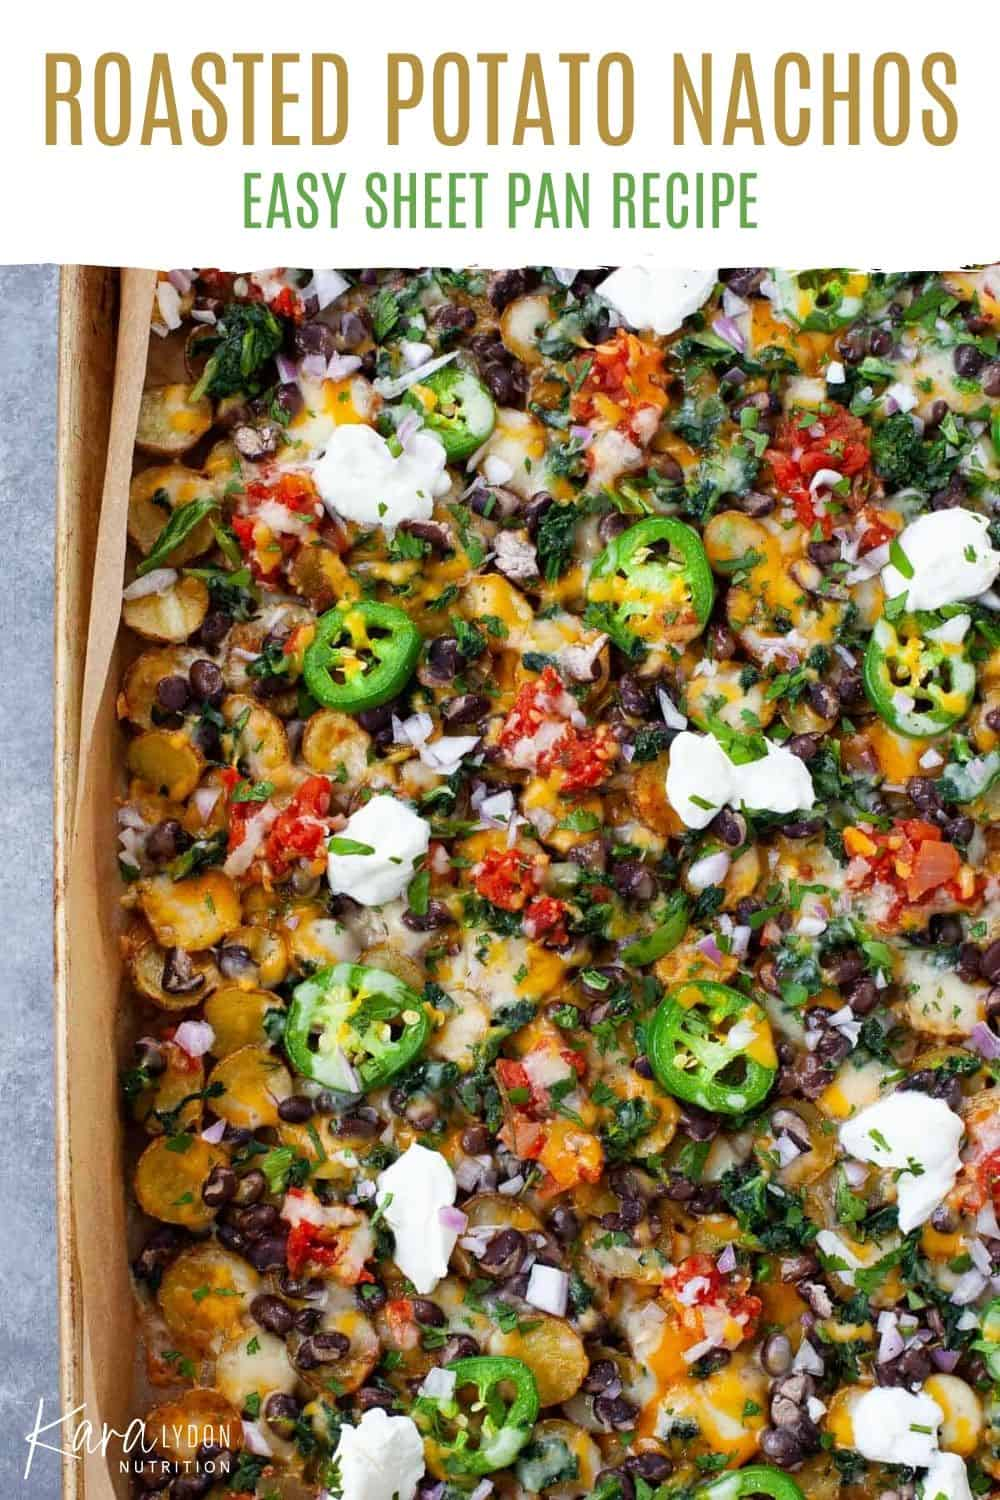 roasted potato nachos on a sheet pan with text overlay for Pinterest